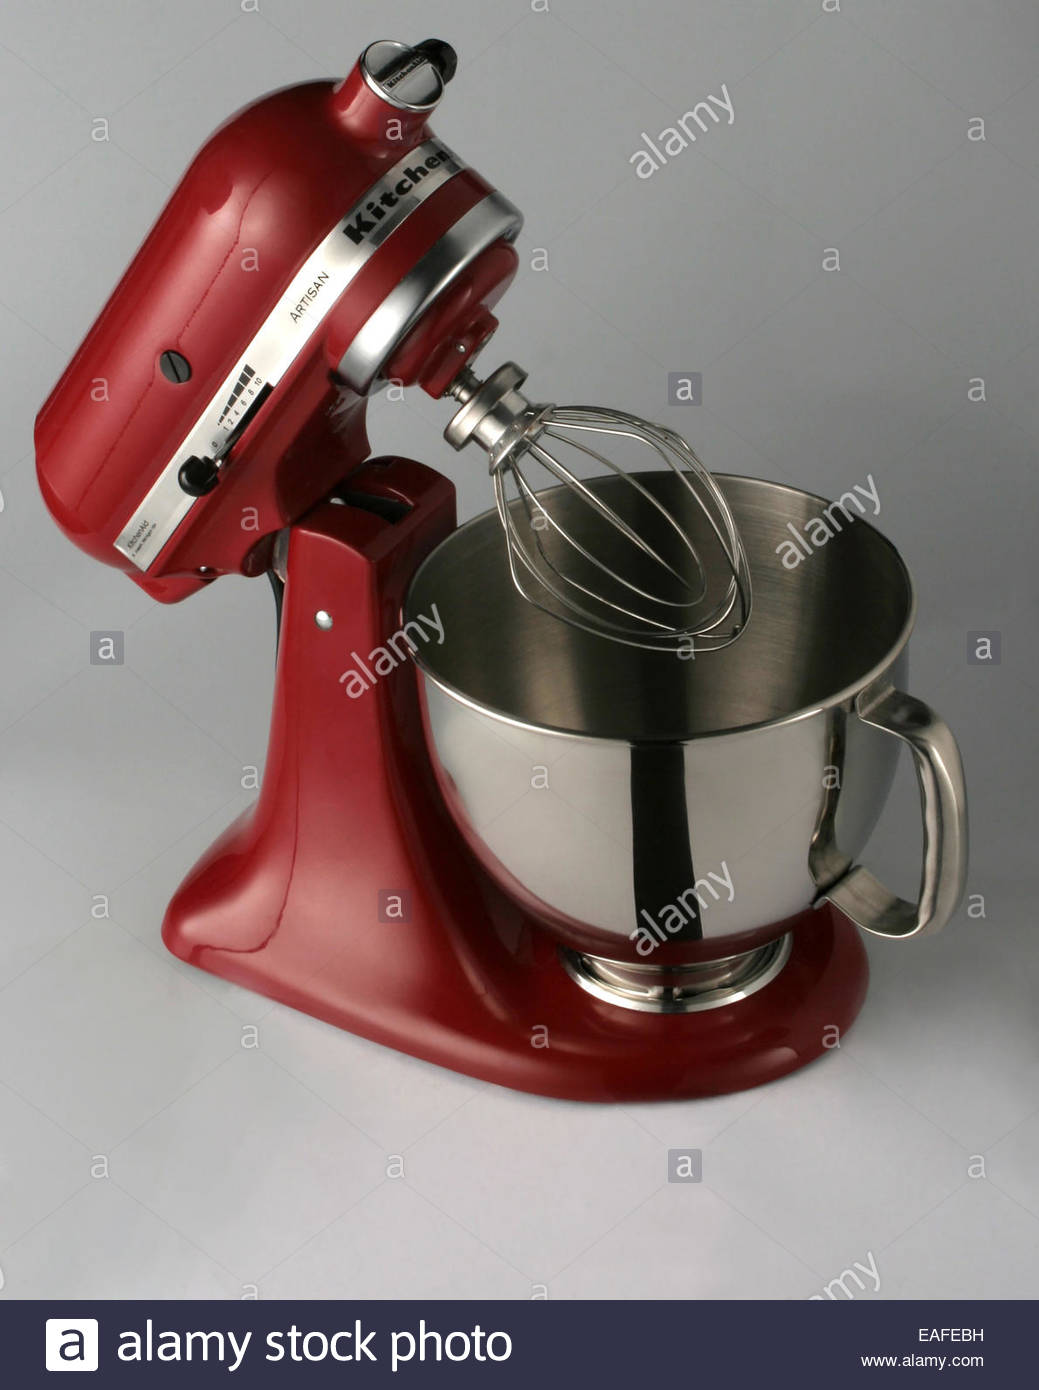 Small Red Kitchen Appliances Red Kitchen Blender Shiny Metallic Kitchen Appliance Used For